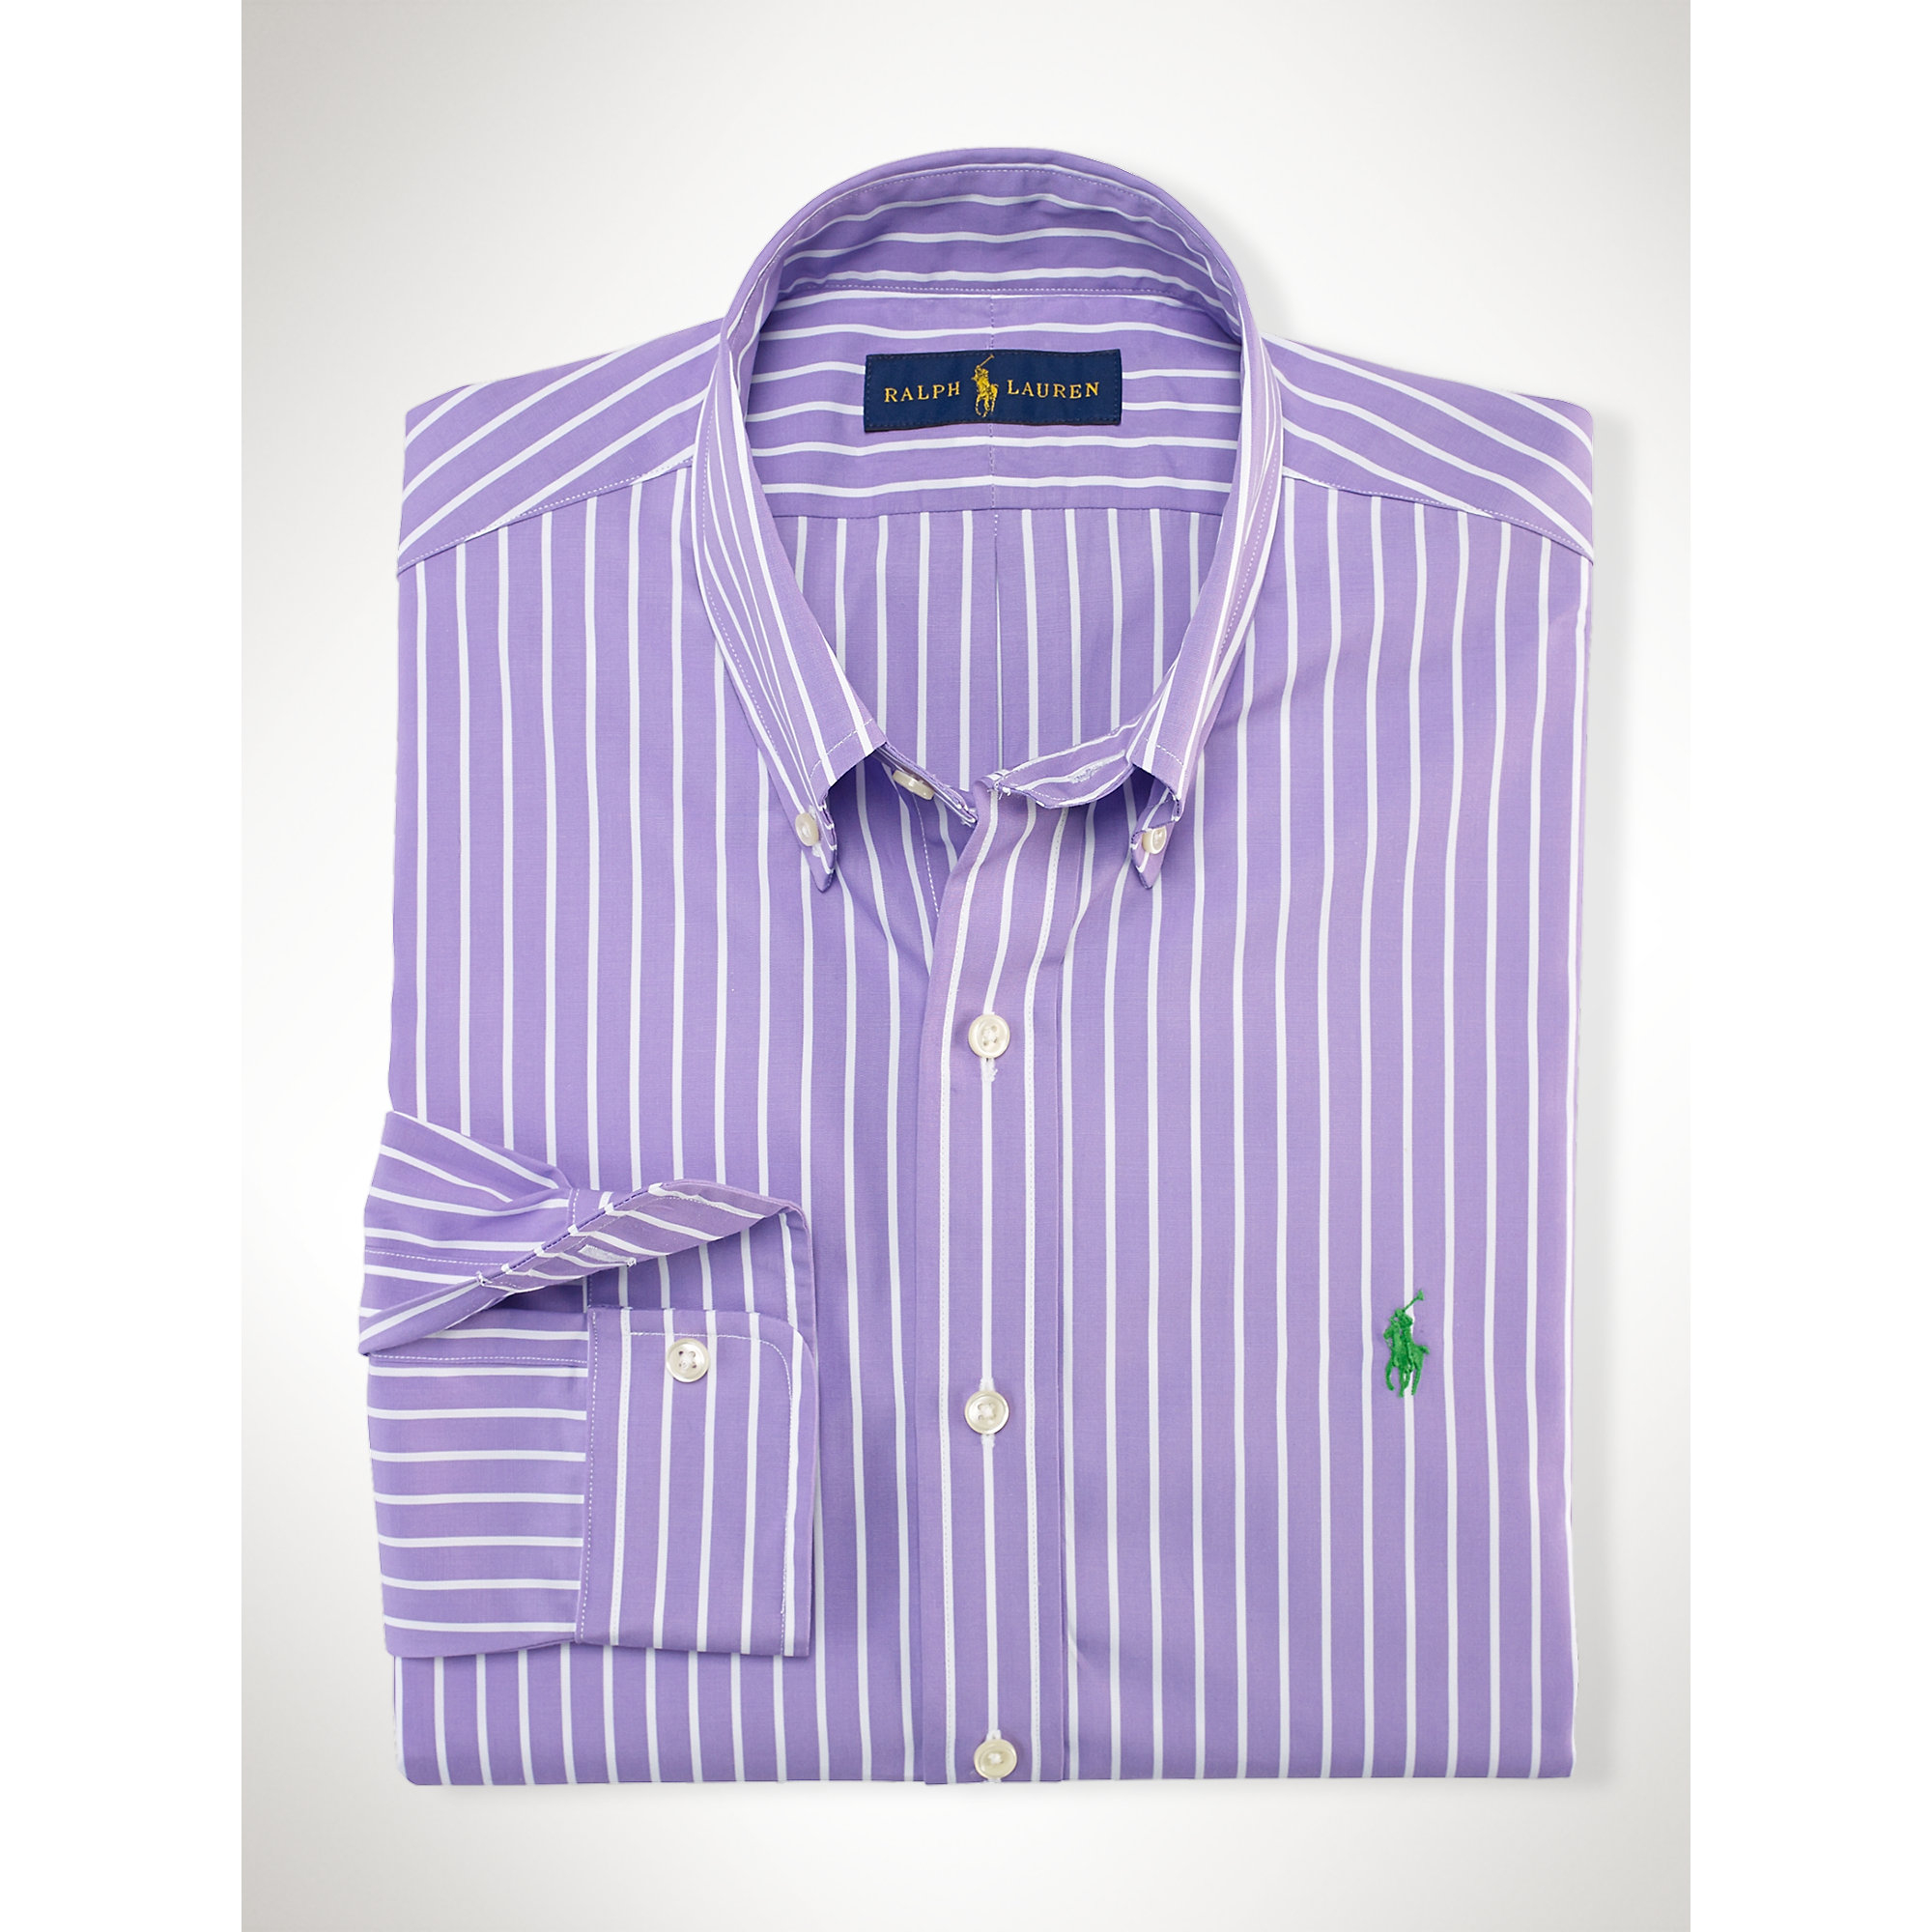 Polo ralph lauren slim fit striped poplin shirt in purple for Purple and black striped t shirt